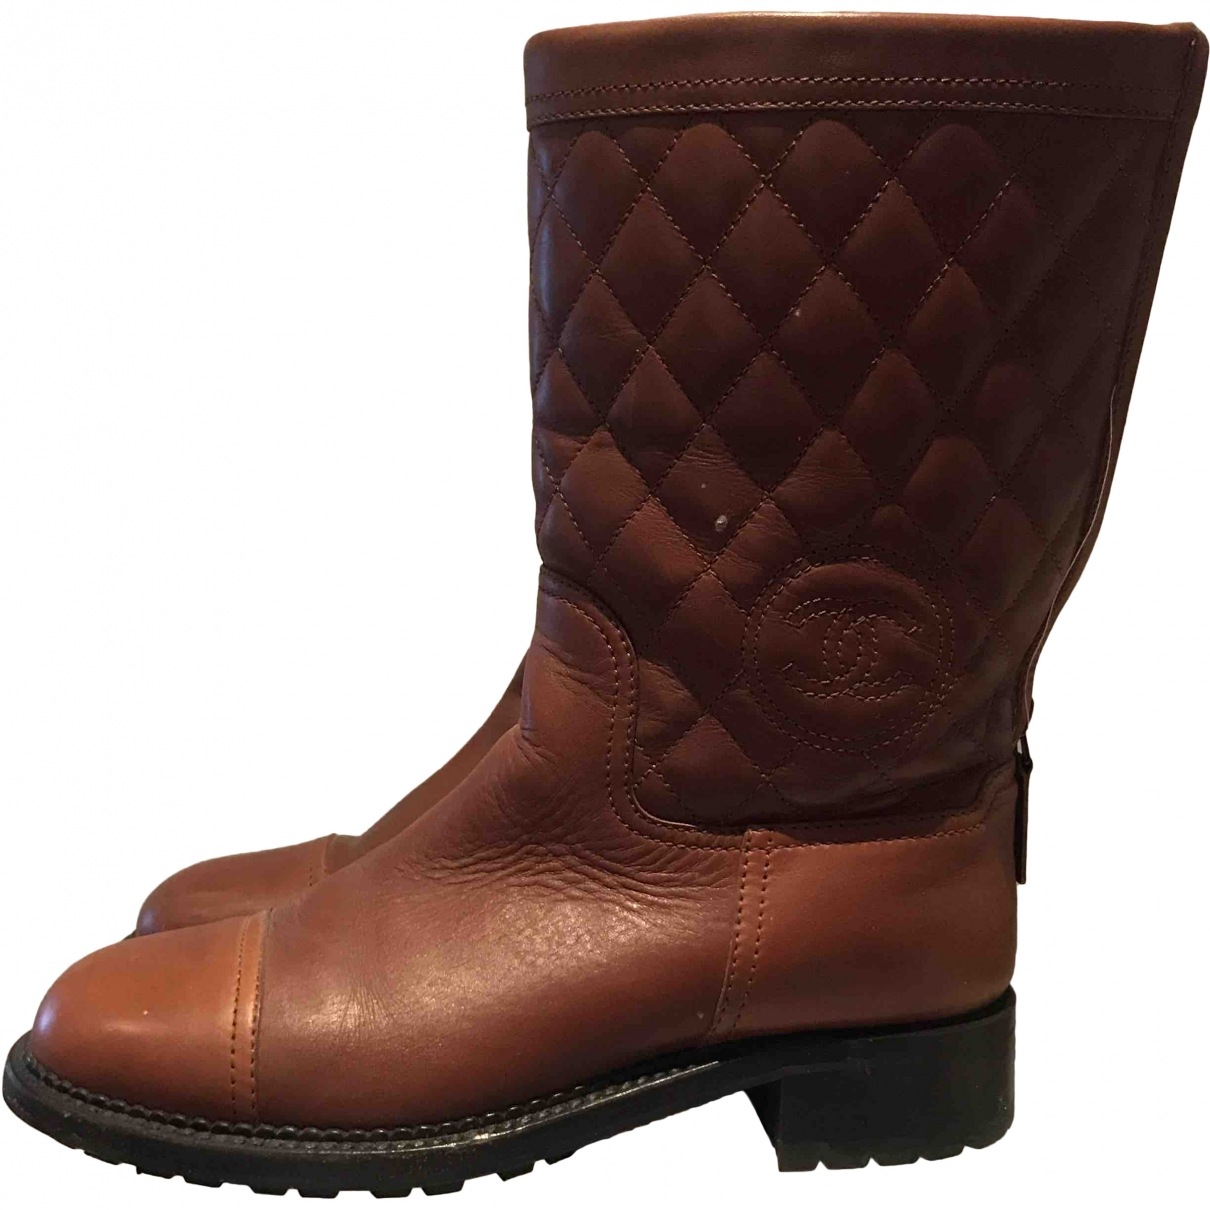 Chanel \N Brown Leather Boots for Women 38 EU